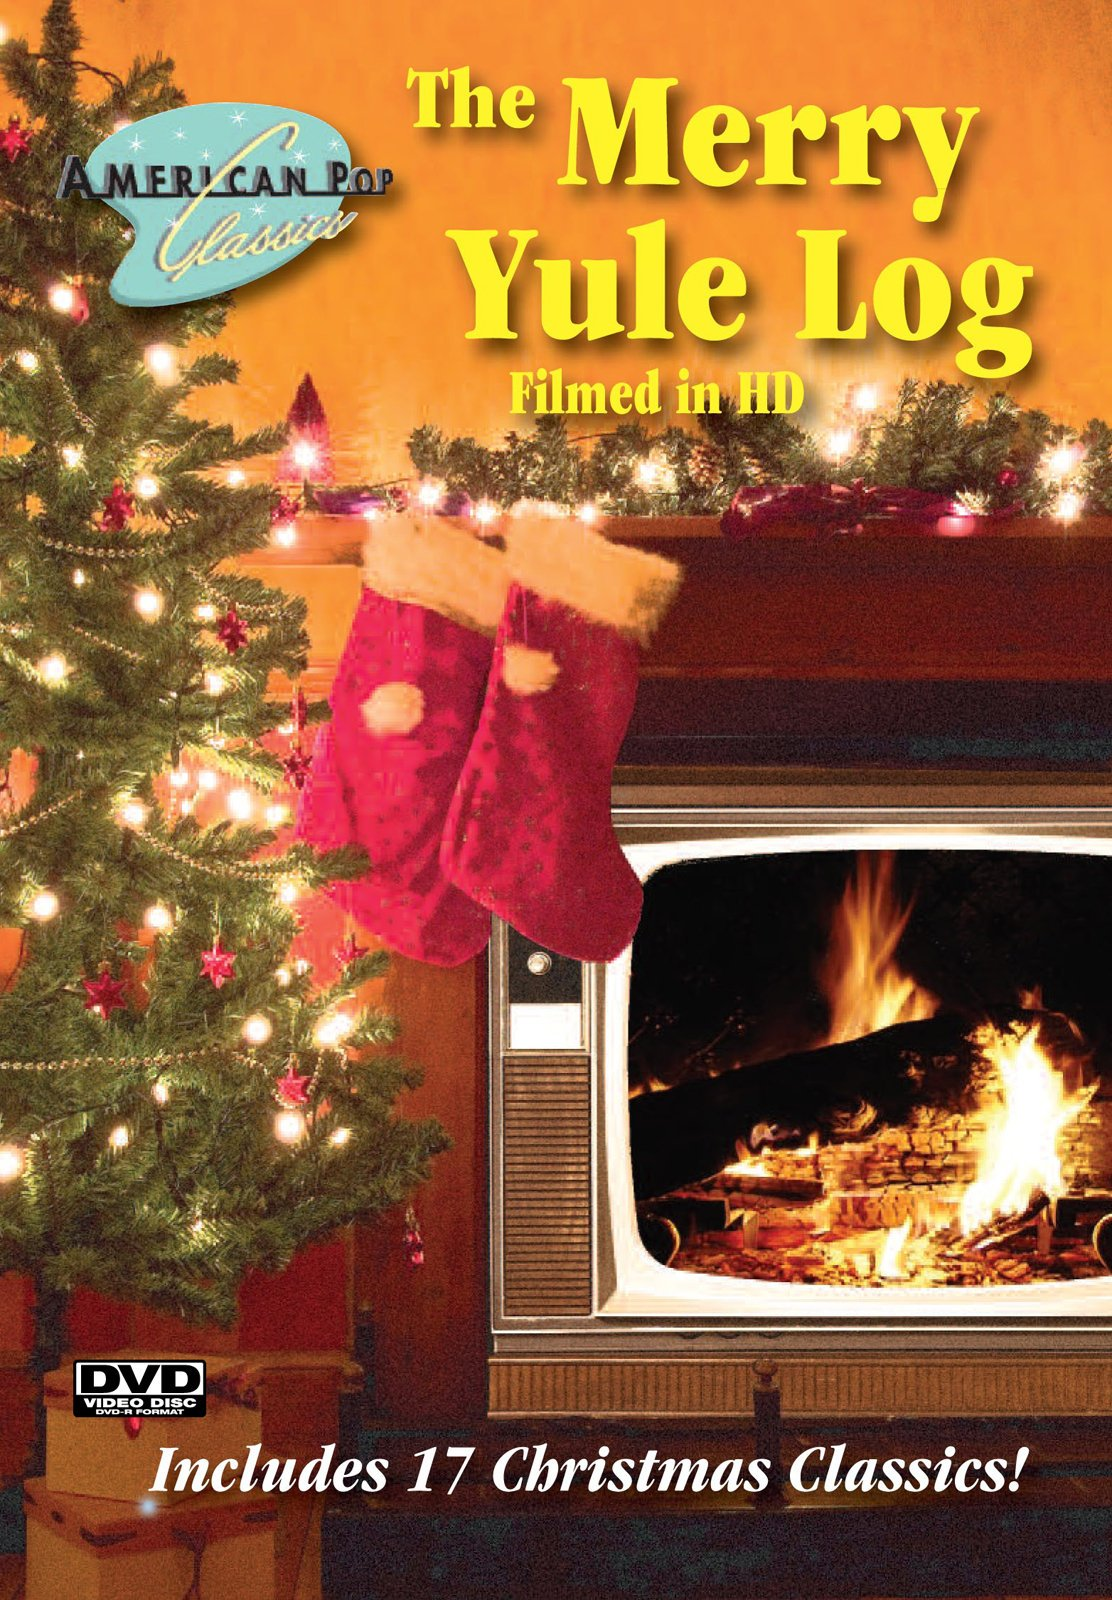 Amazon.com: The Merry Yule Log: Unavailable